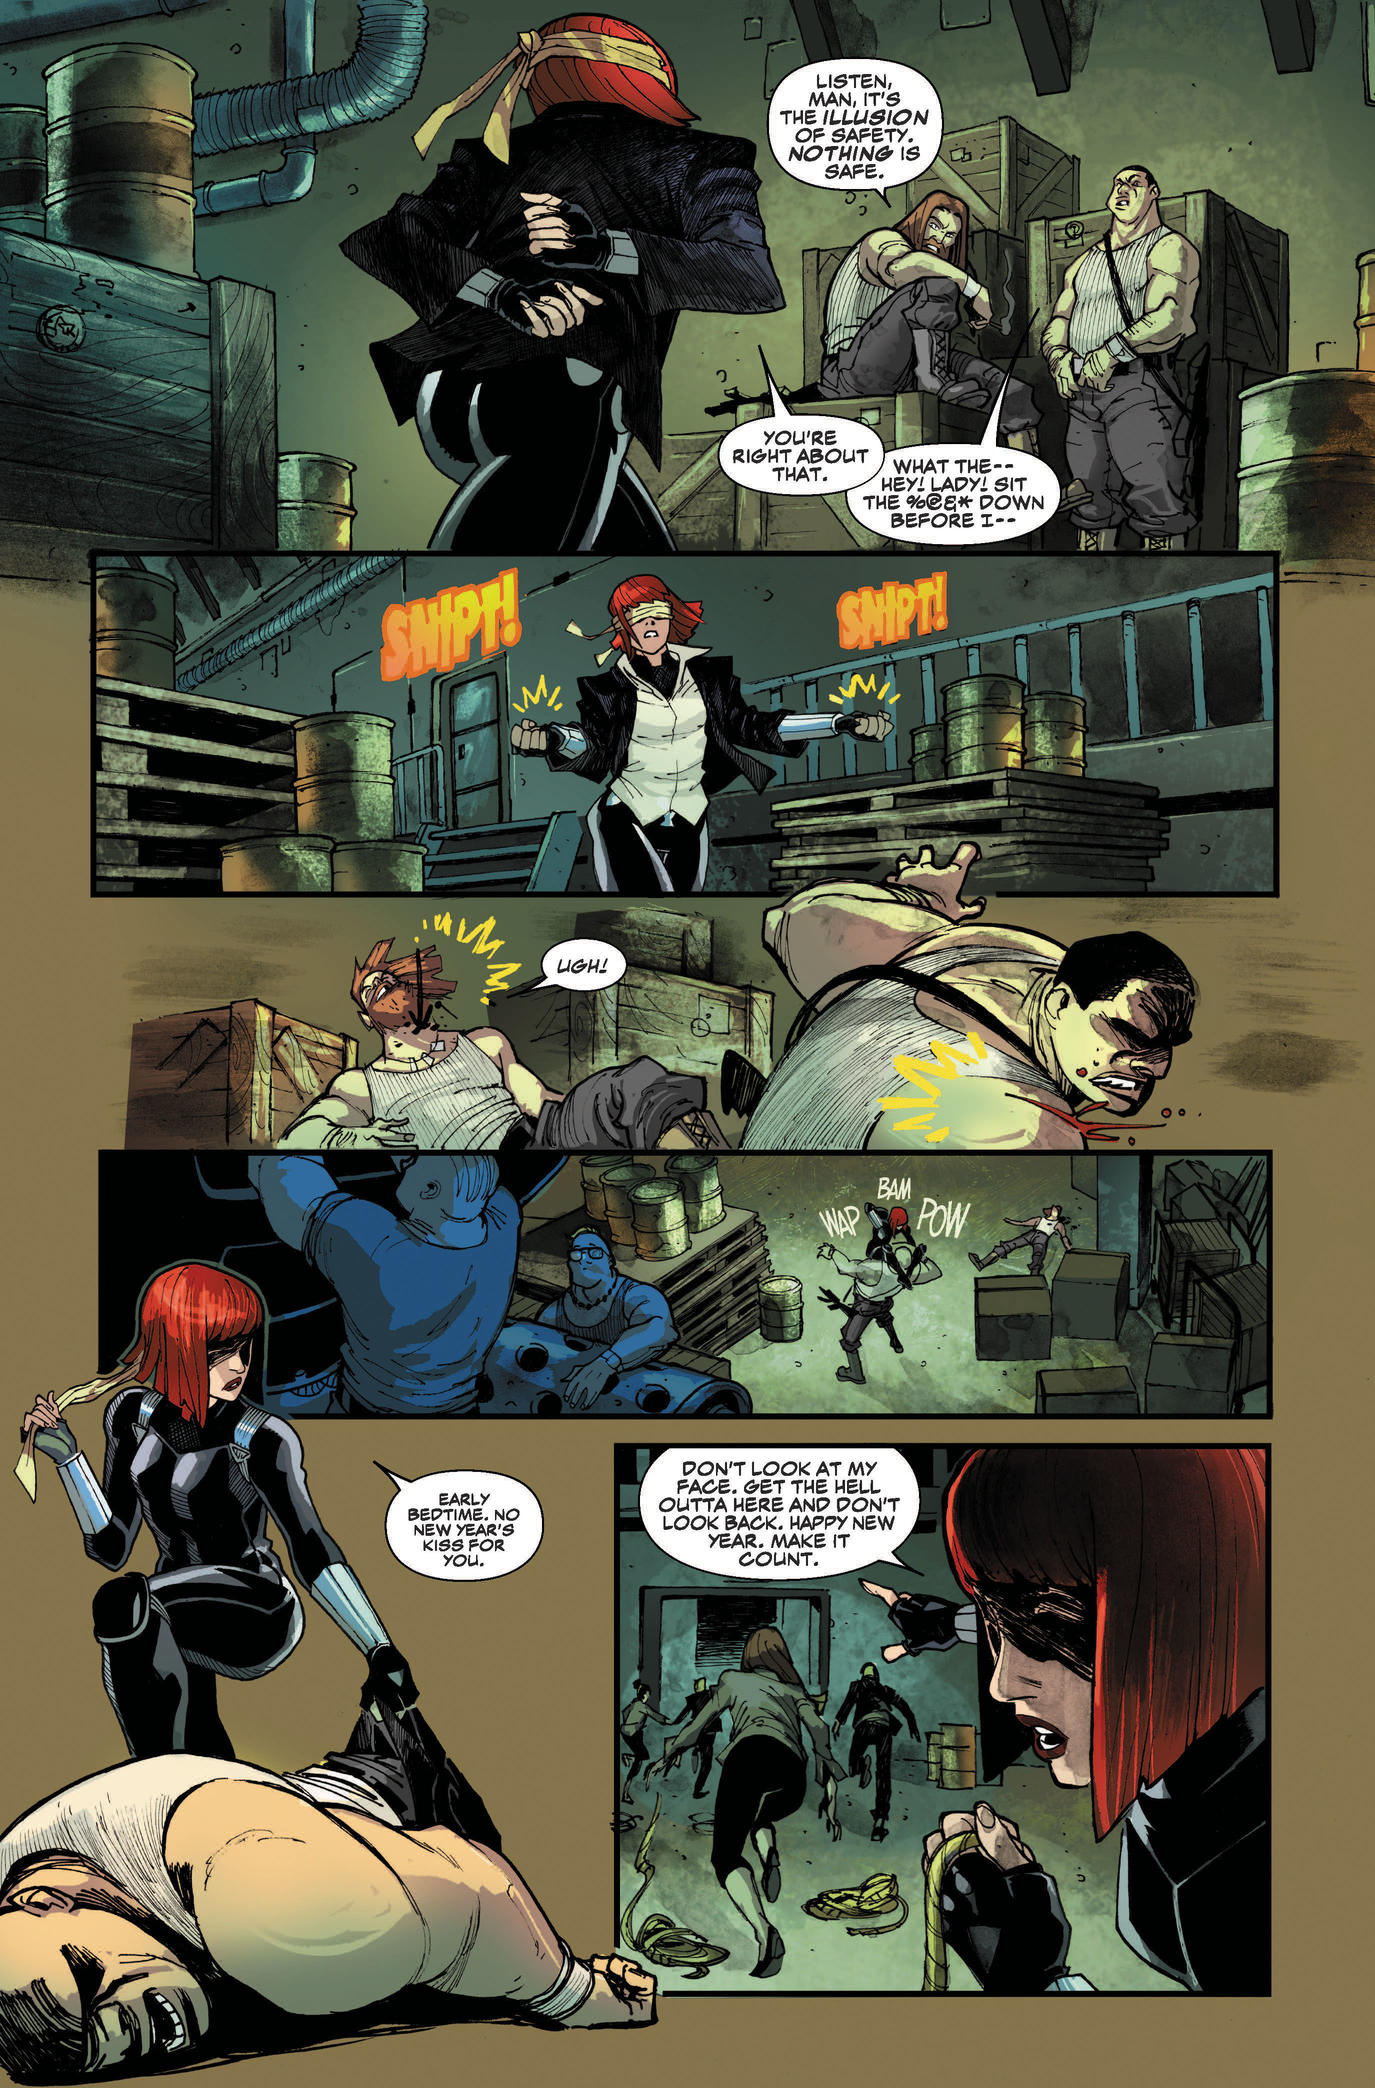 Preview page from Black Widow #1